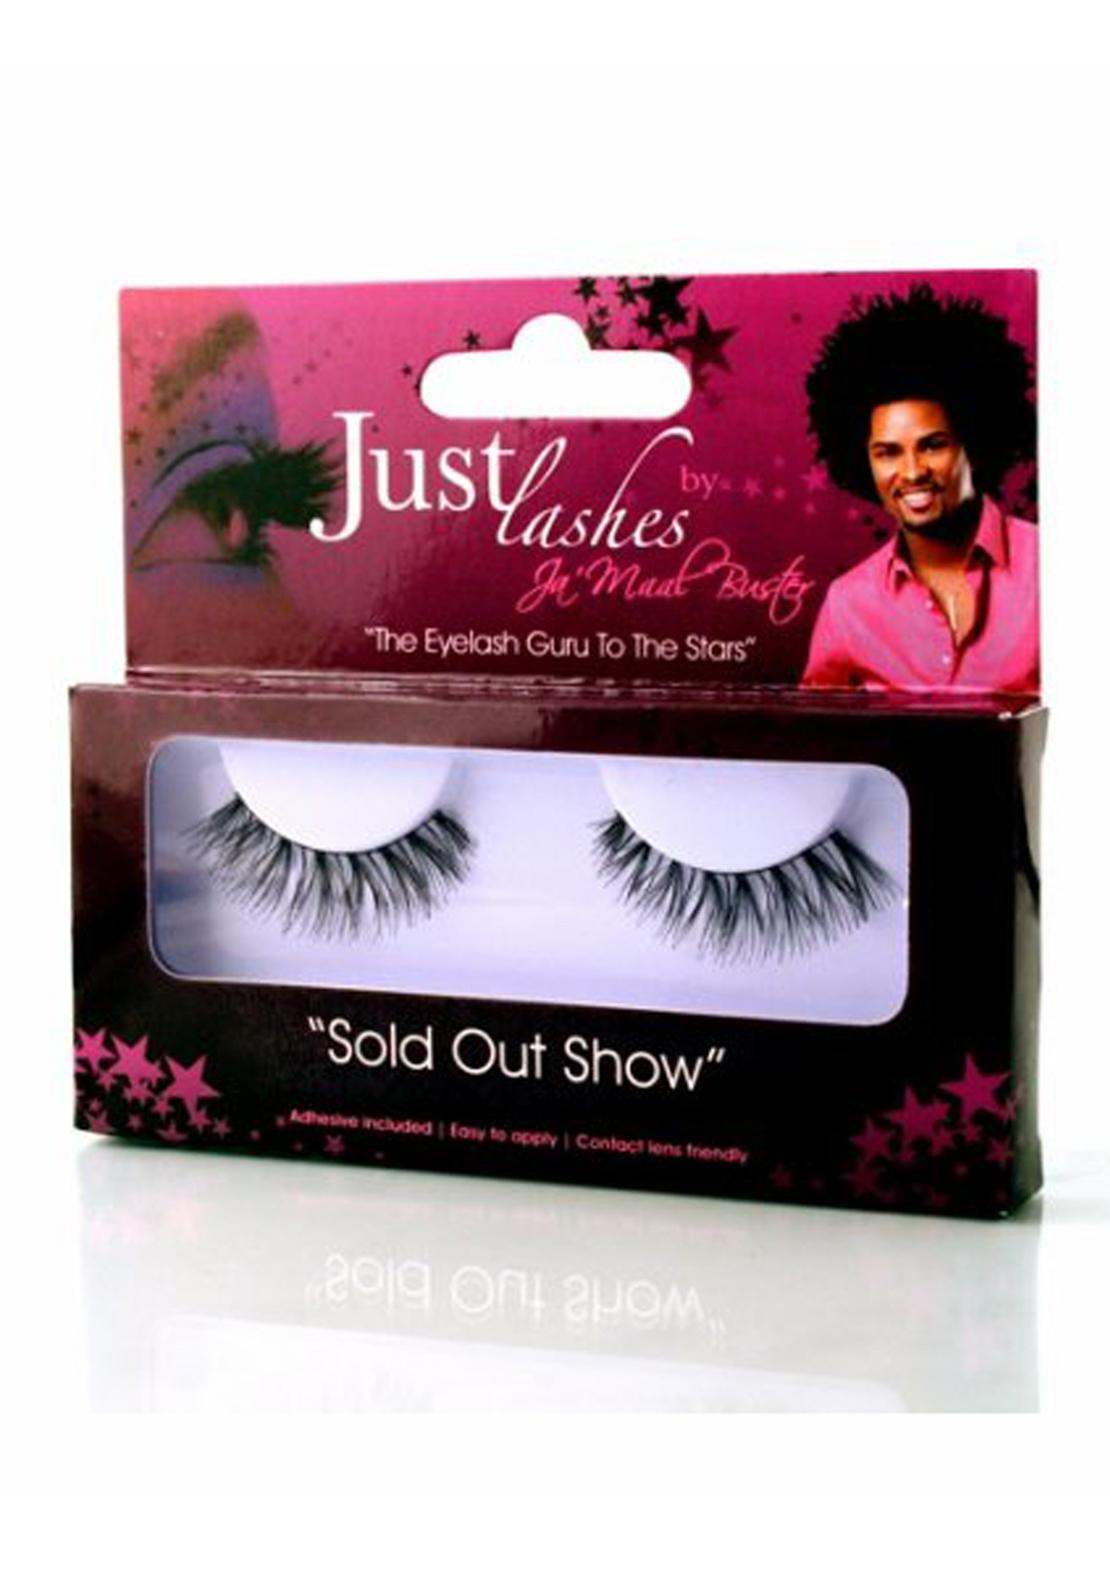 Just Lashes by Ja'Maal Buster, Sold out Show